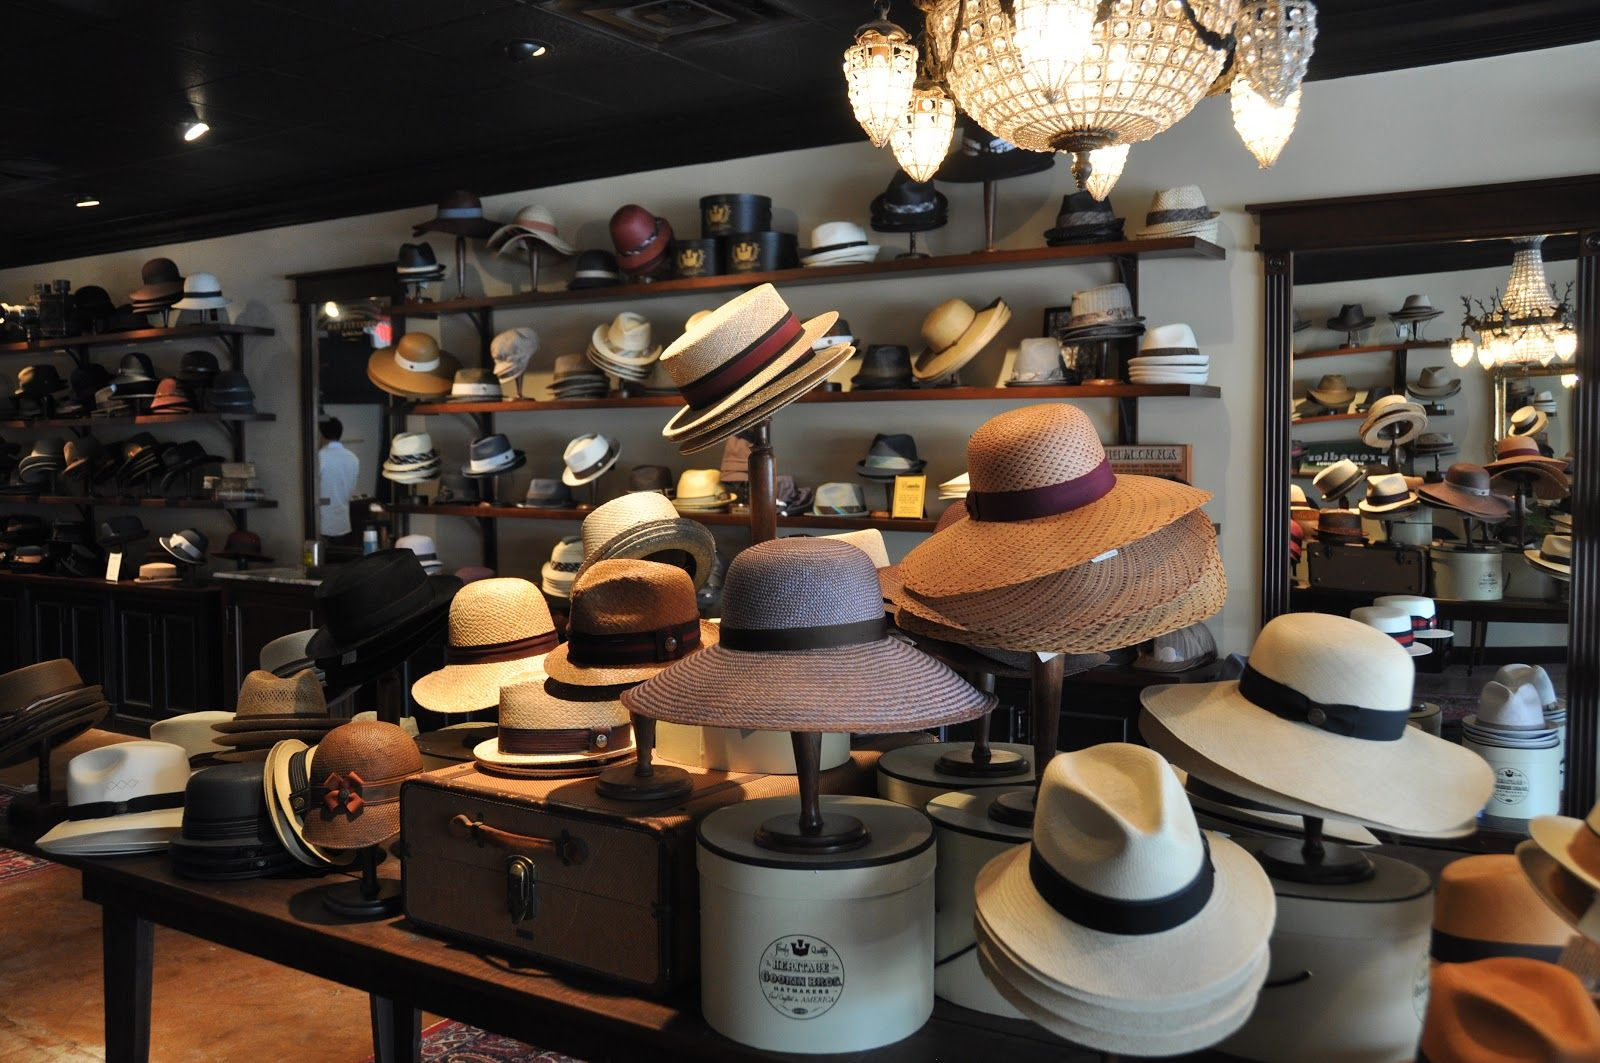 hat store - Google Search  8165a46eb68